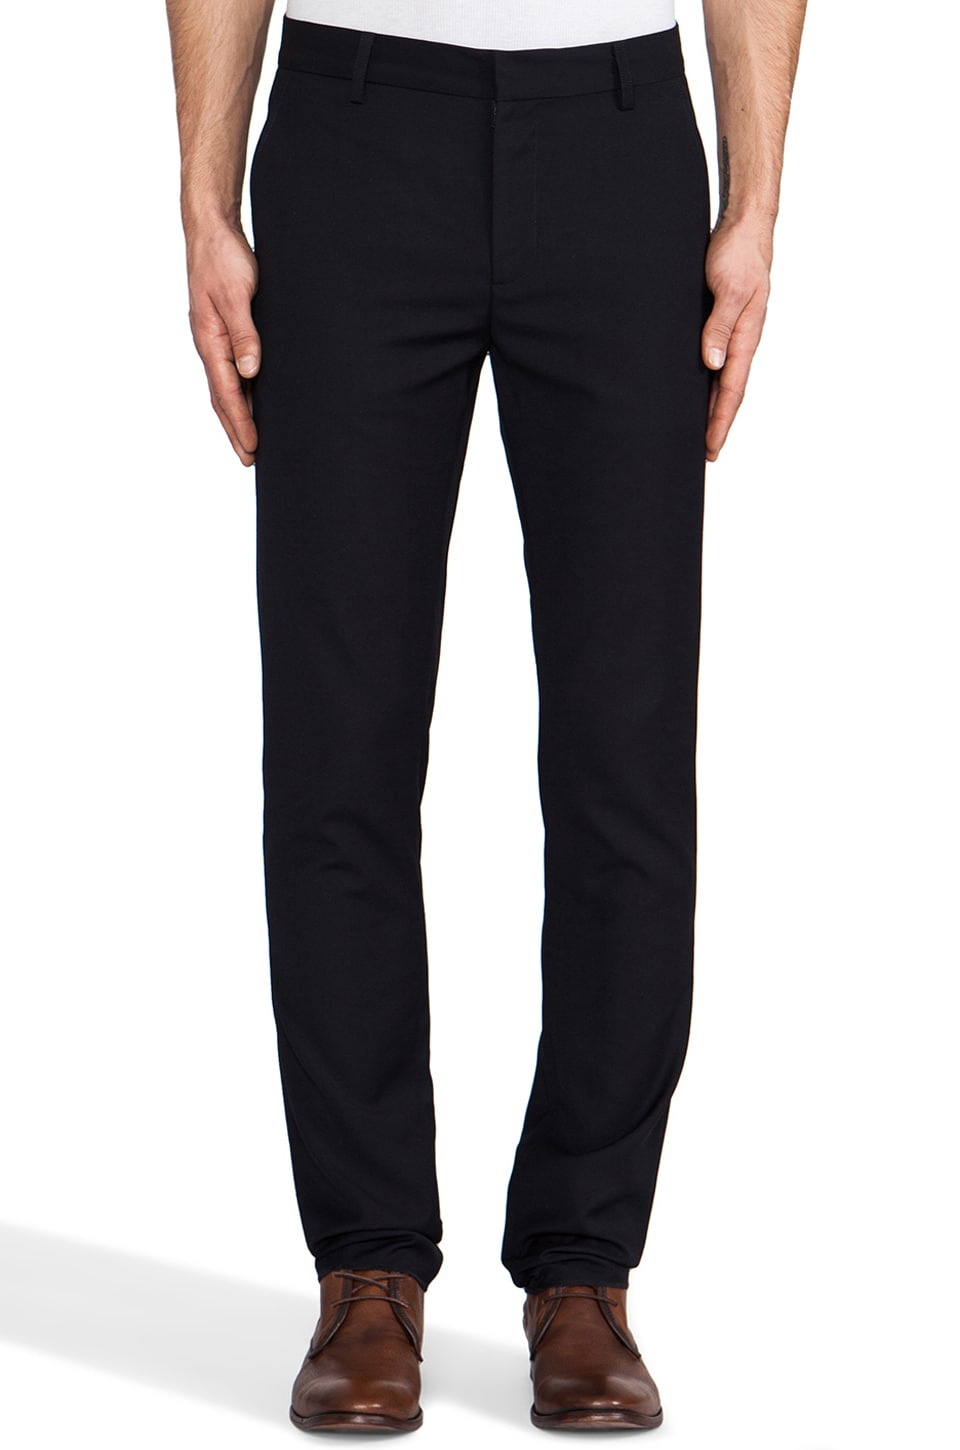 Shades of Grey by Micah Cohen Slim Fit Suit Pant in Navy Wool